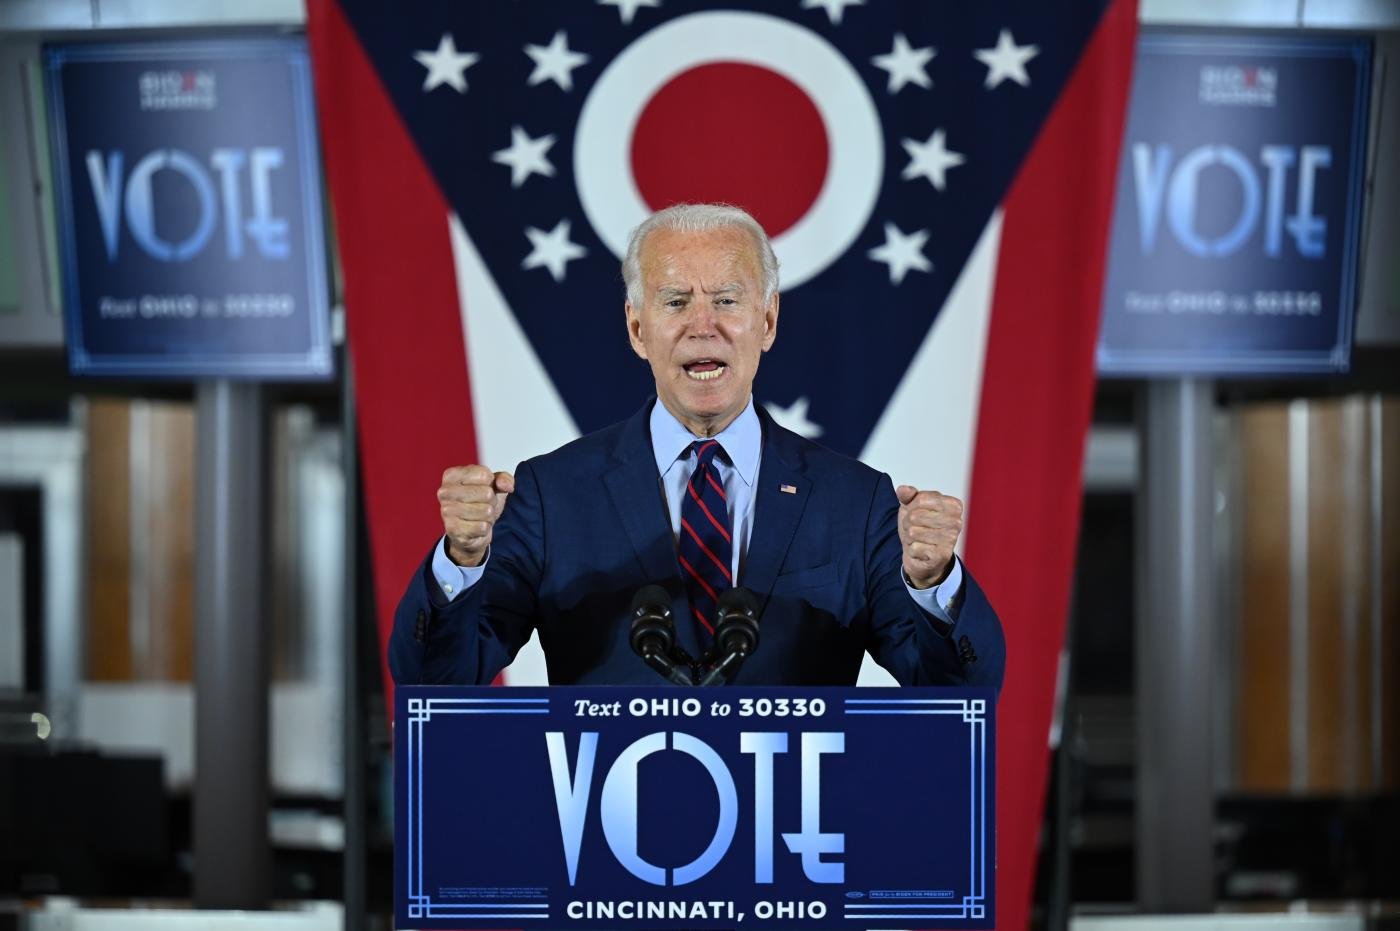 Joe Biden Says Muslims would Serve 'At Every Level' In His Administration